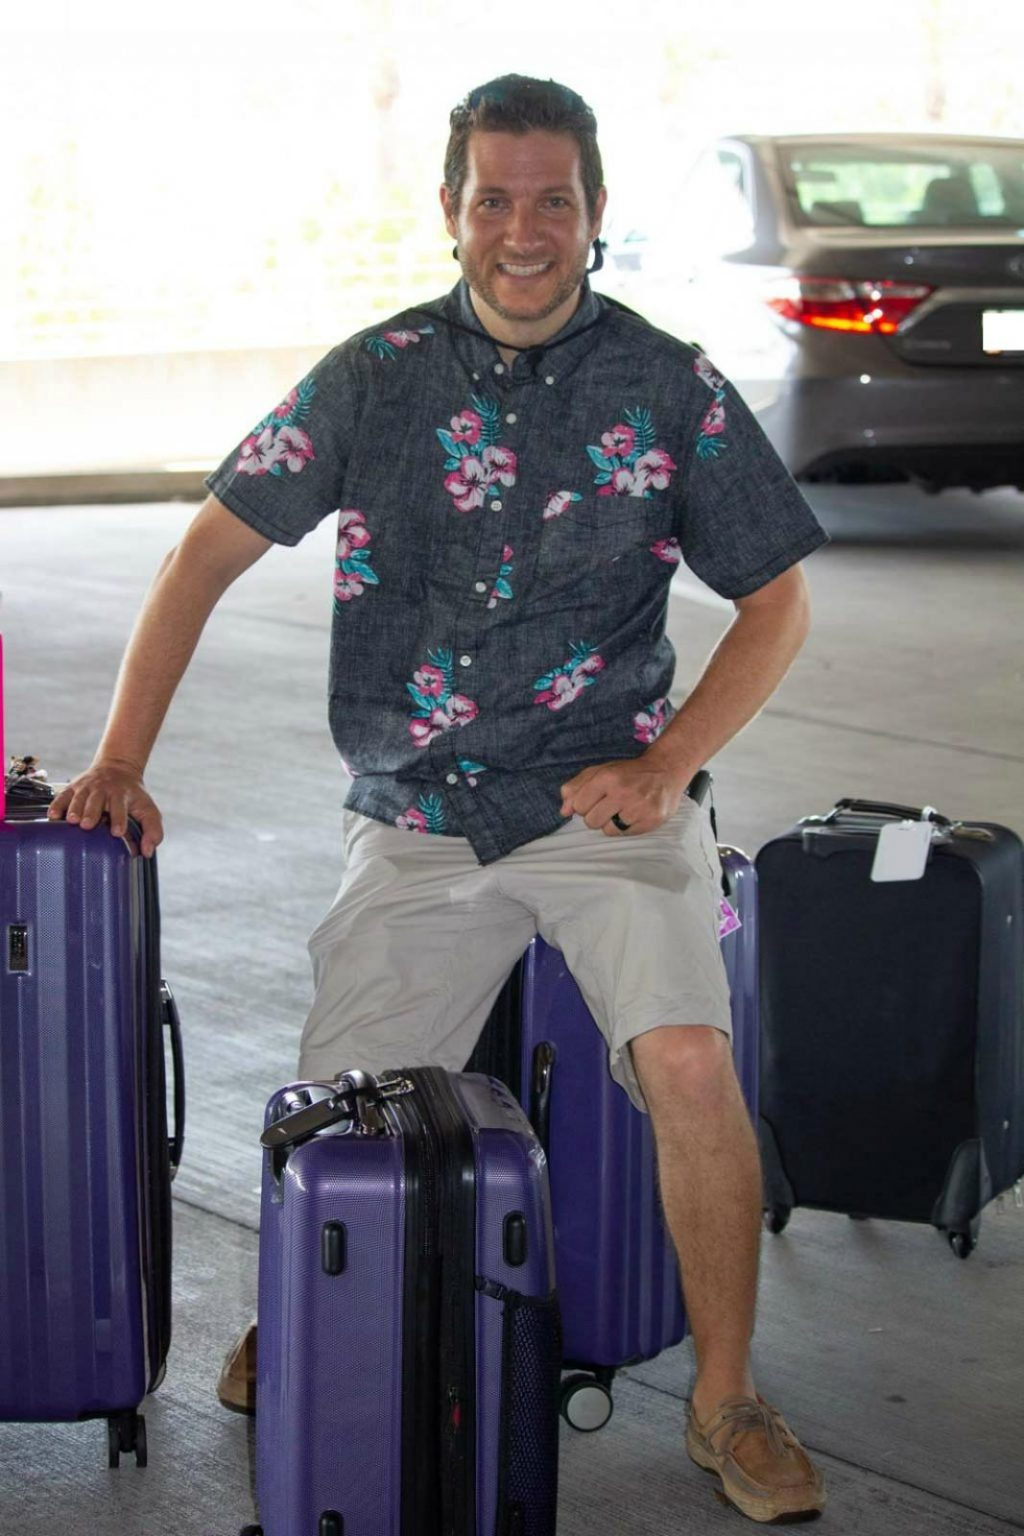 A man in a floral shirt is sitting on top of a purple suitcase with a few suitcases next to him.